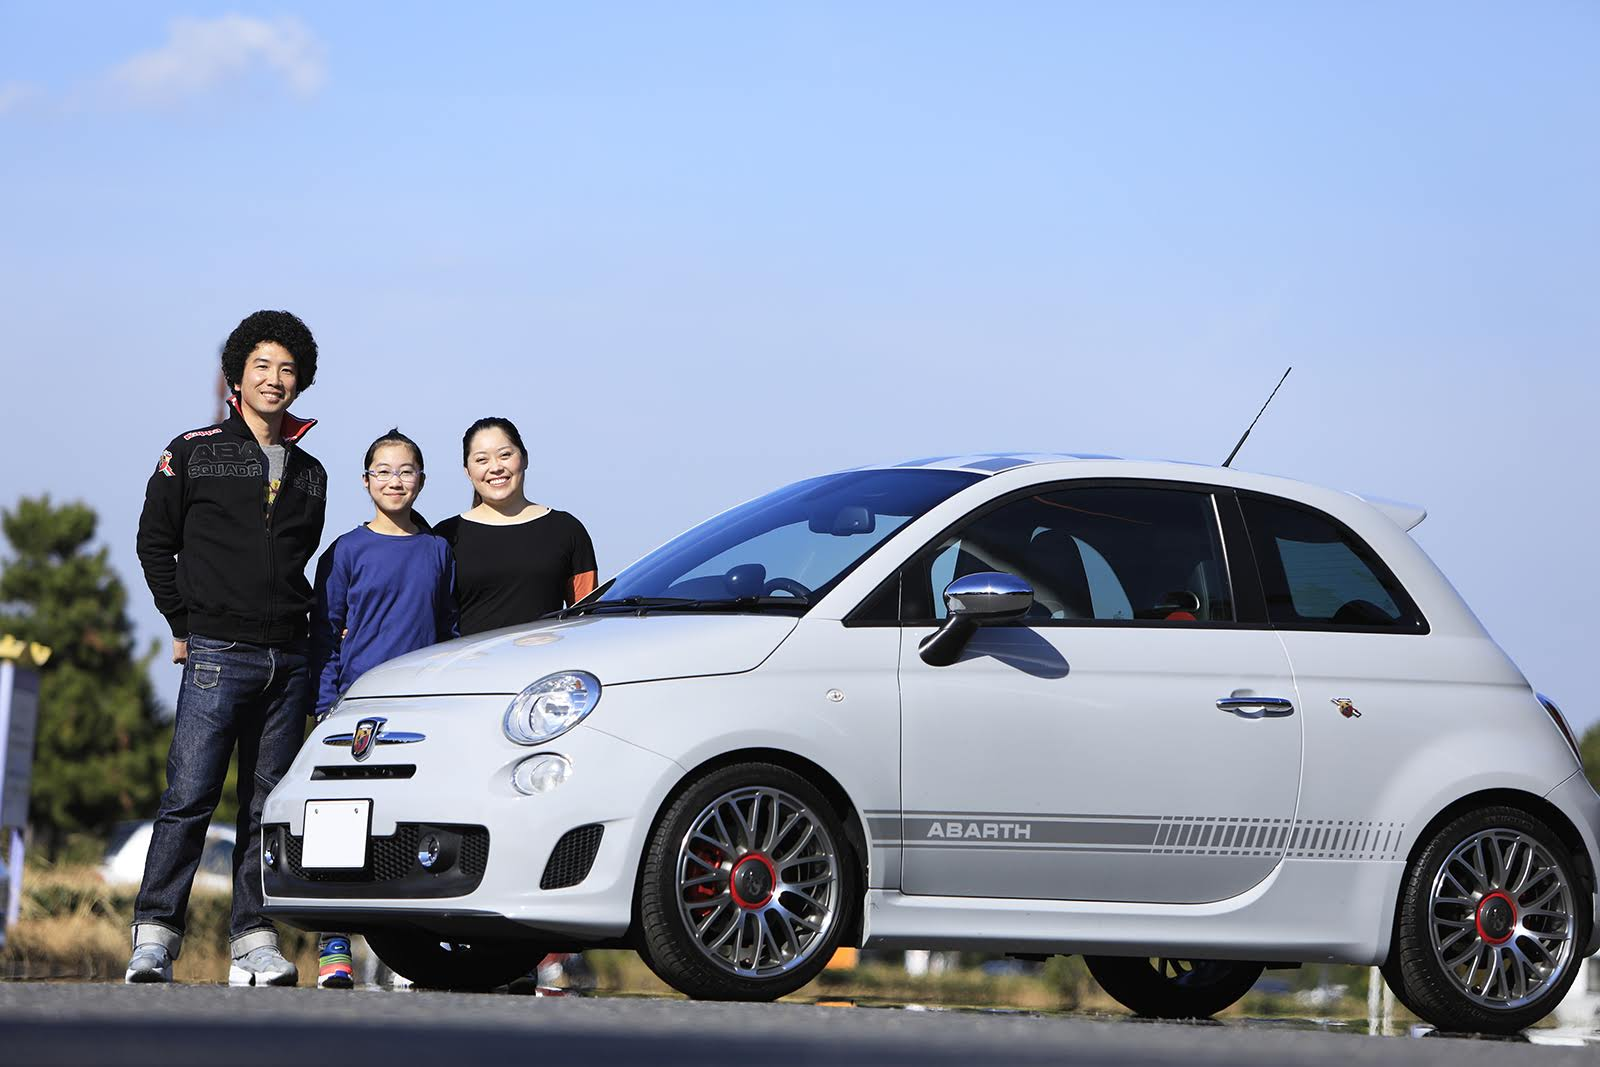 190426_Abarth_Owners_01m